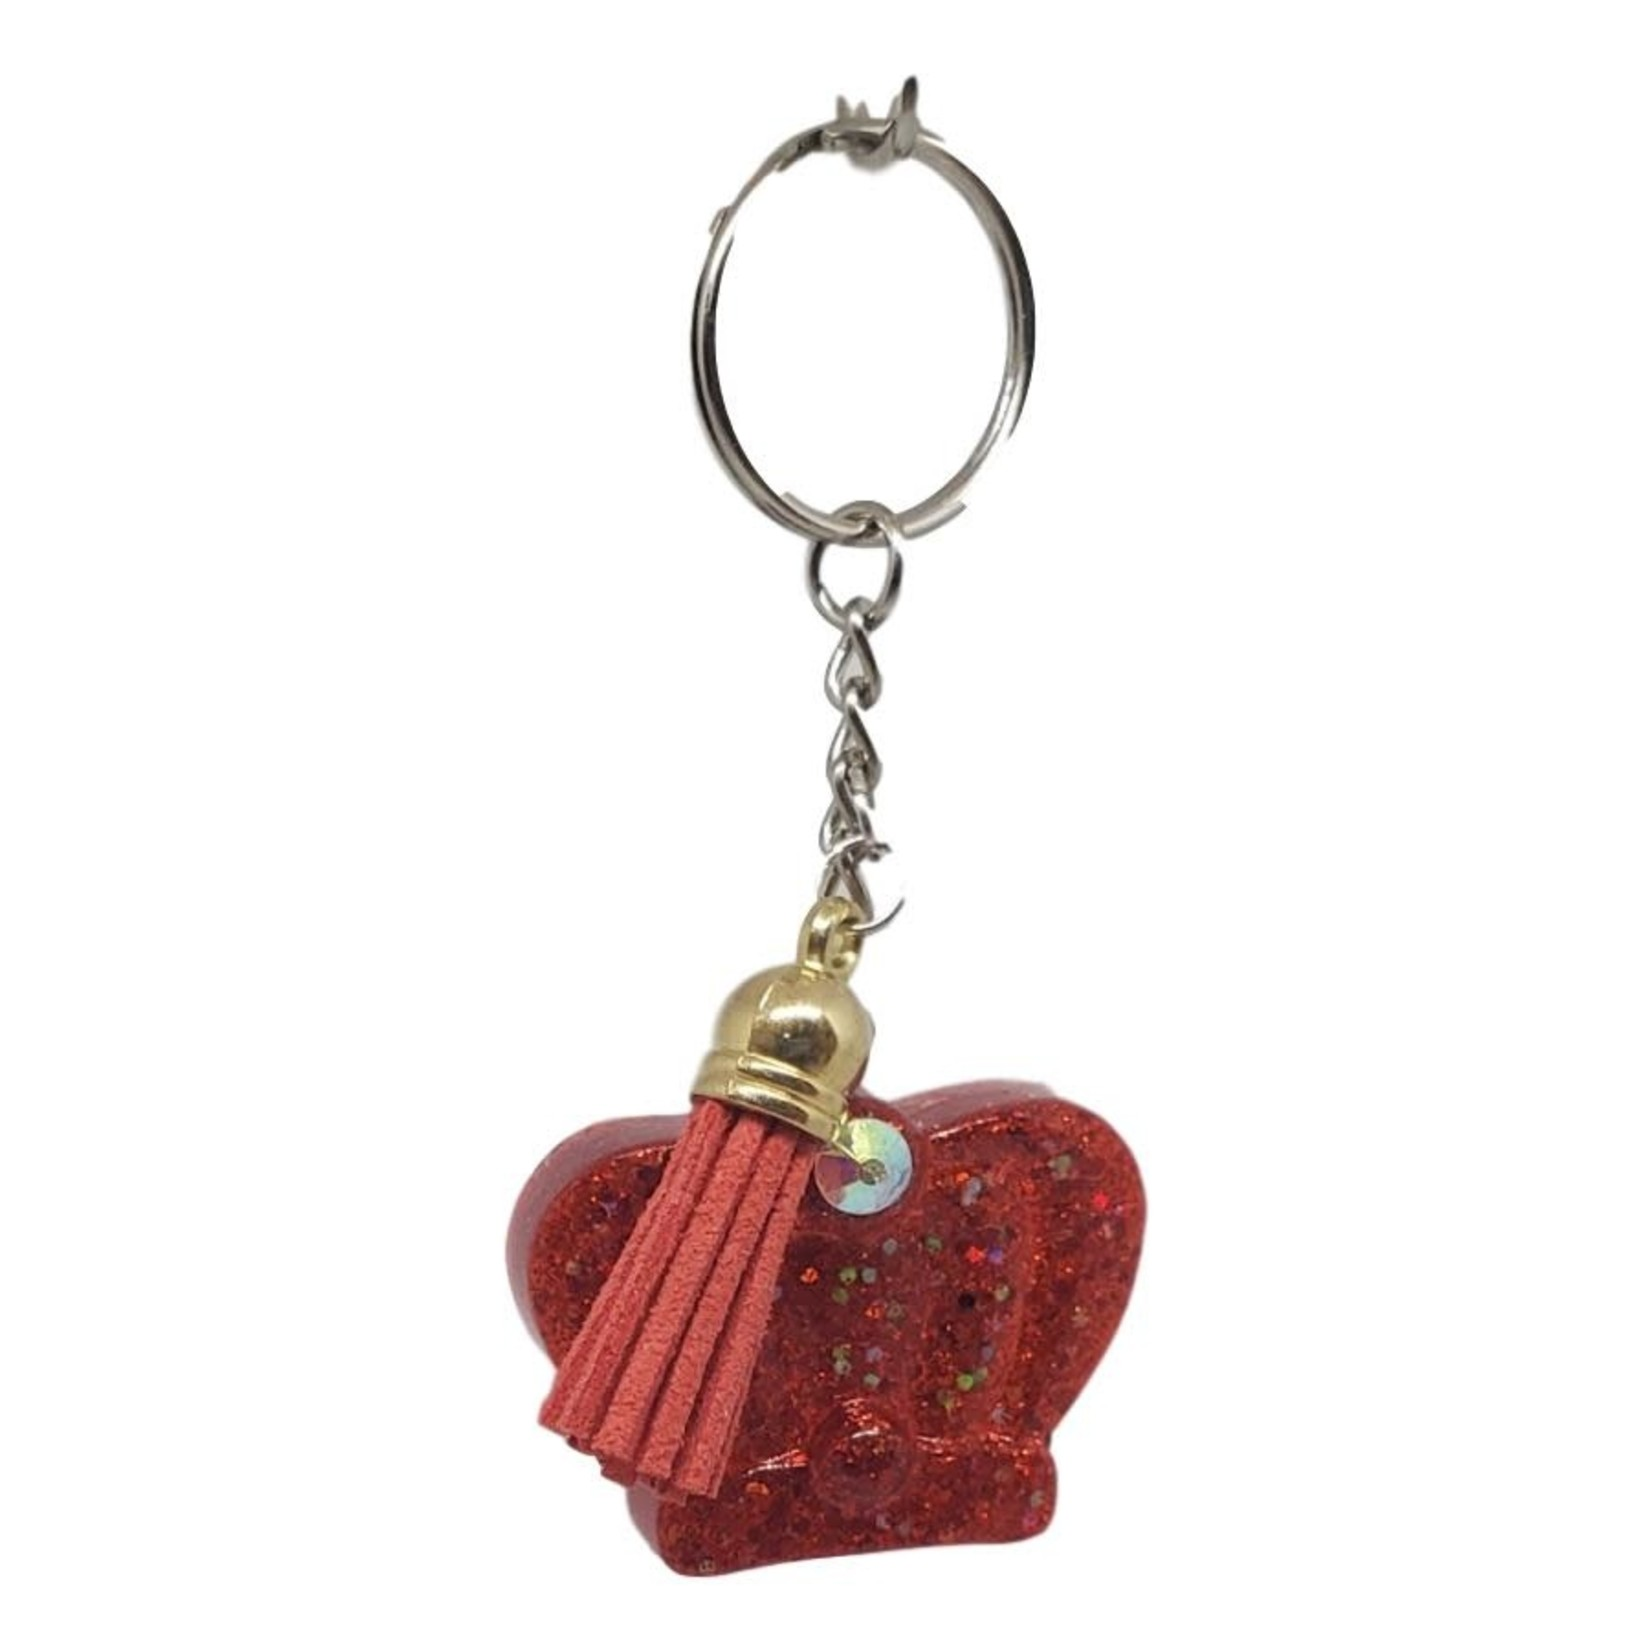 East Coast Sirens Red Crown Key Chain with Tassel Charm